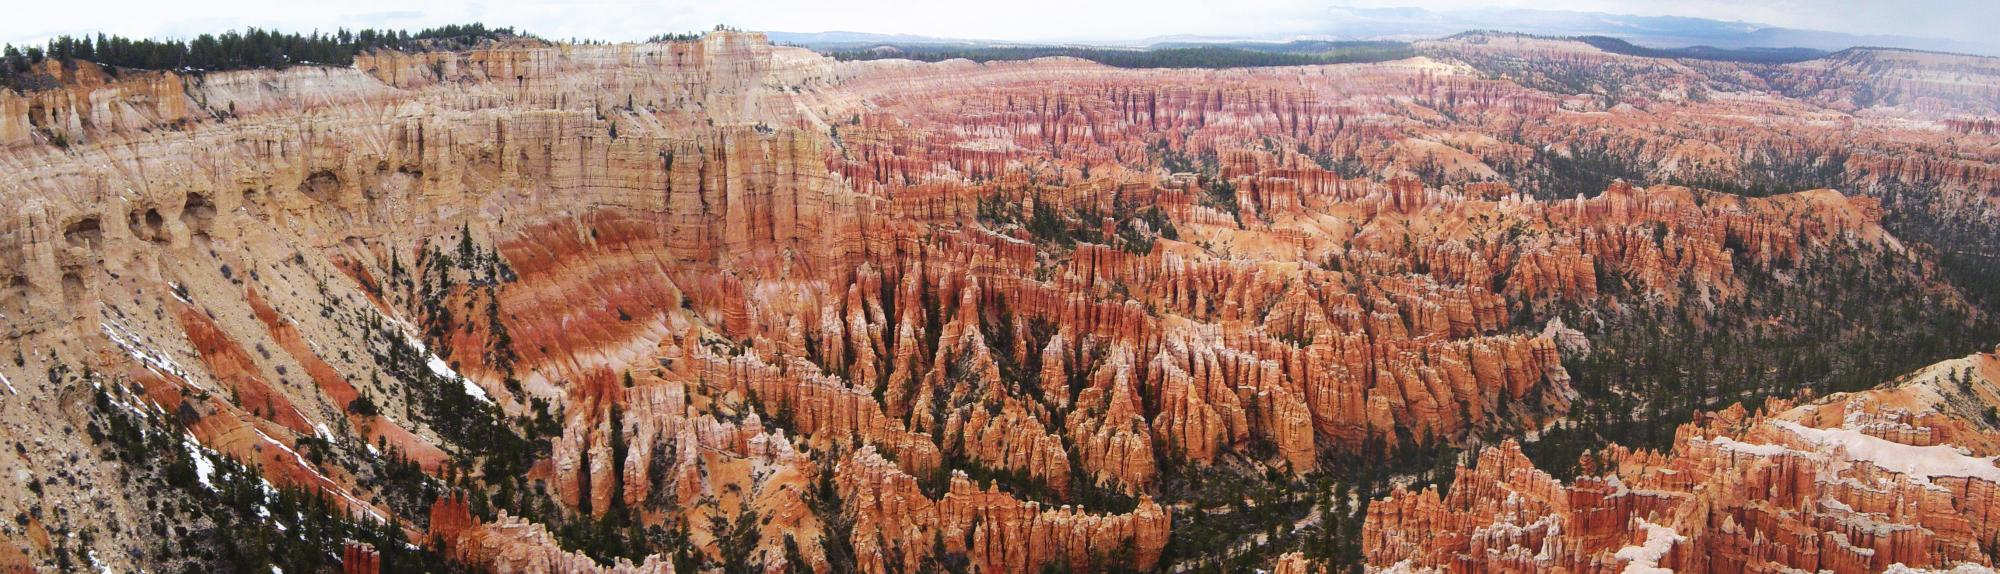 Visiter Bryce Canyon National Park